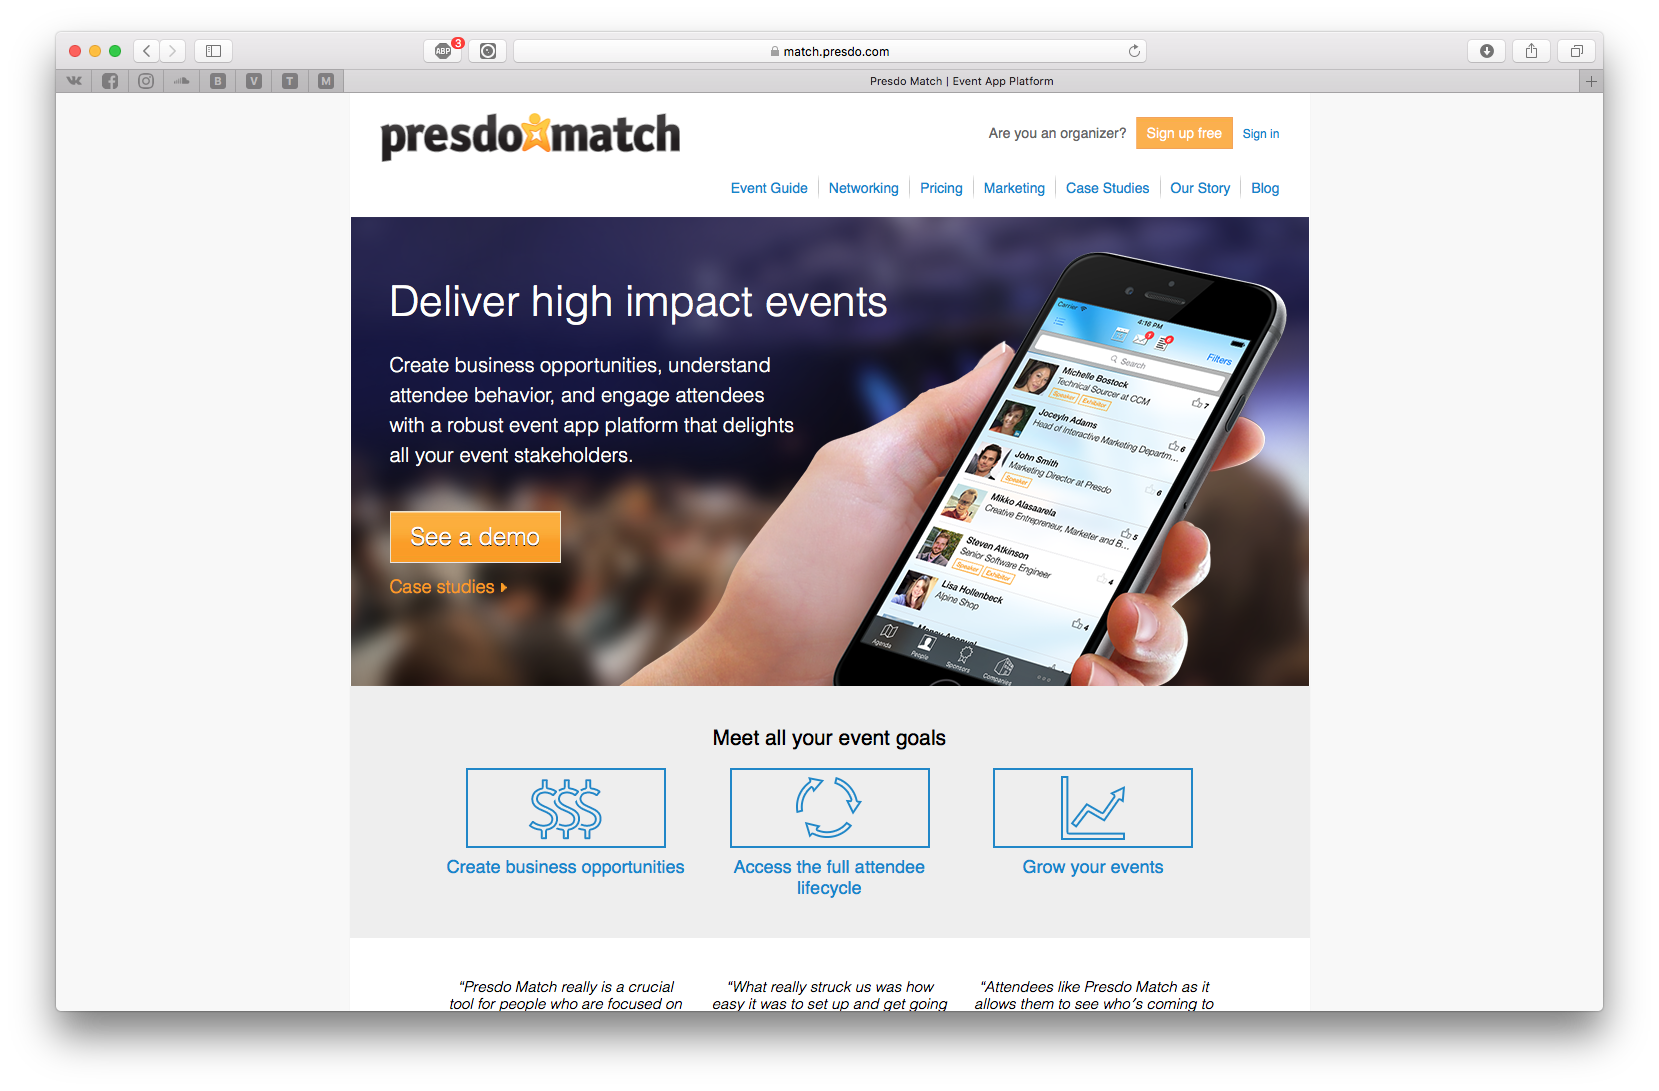 Presdo Match allows event organizers to create business opportunities, understand attendee behavior, and engage attendees with a robust event app platform that delights all your event stakeholders